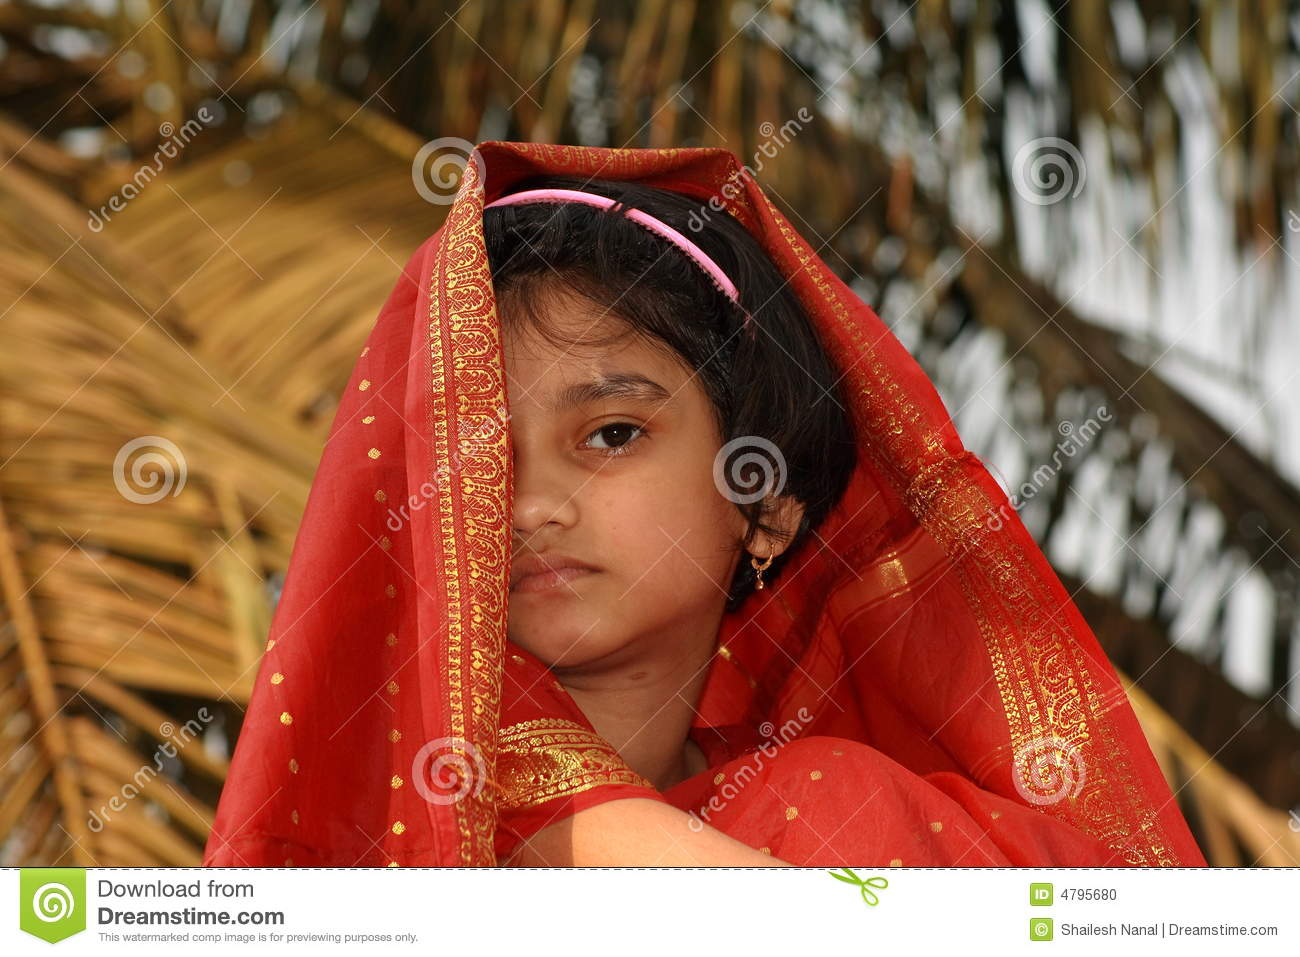 Shy Young Girl In Red Sari Stock Photo - Image: 4795680